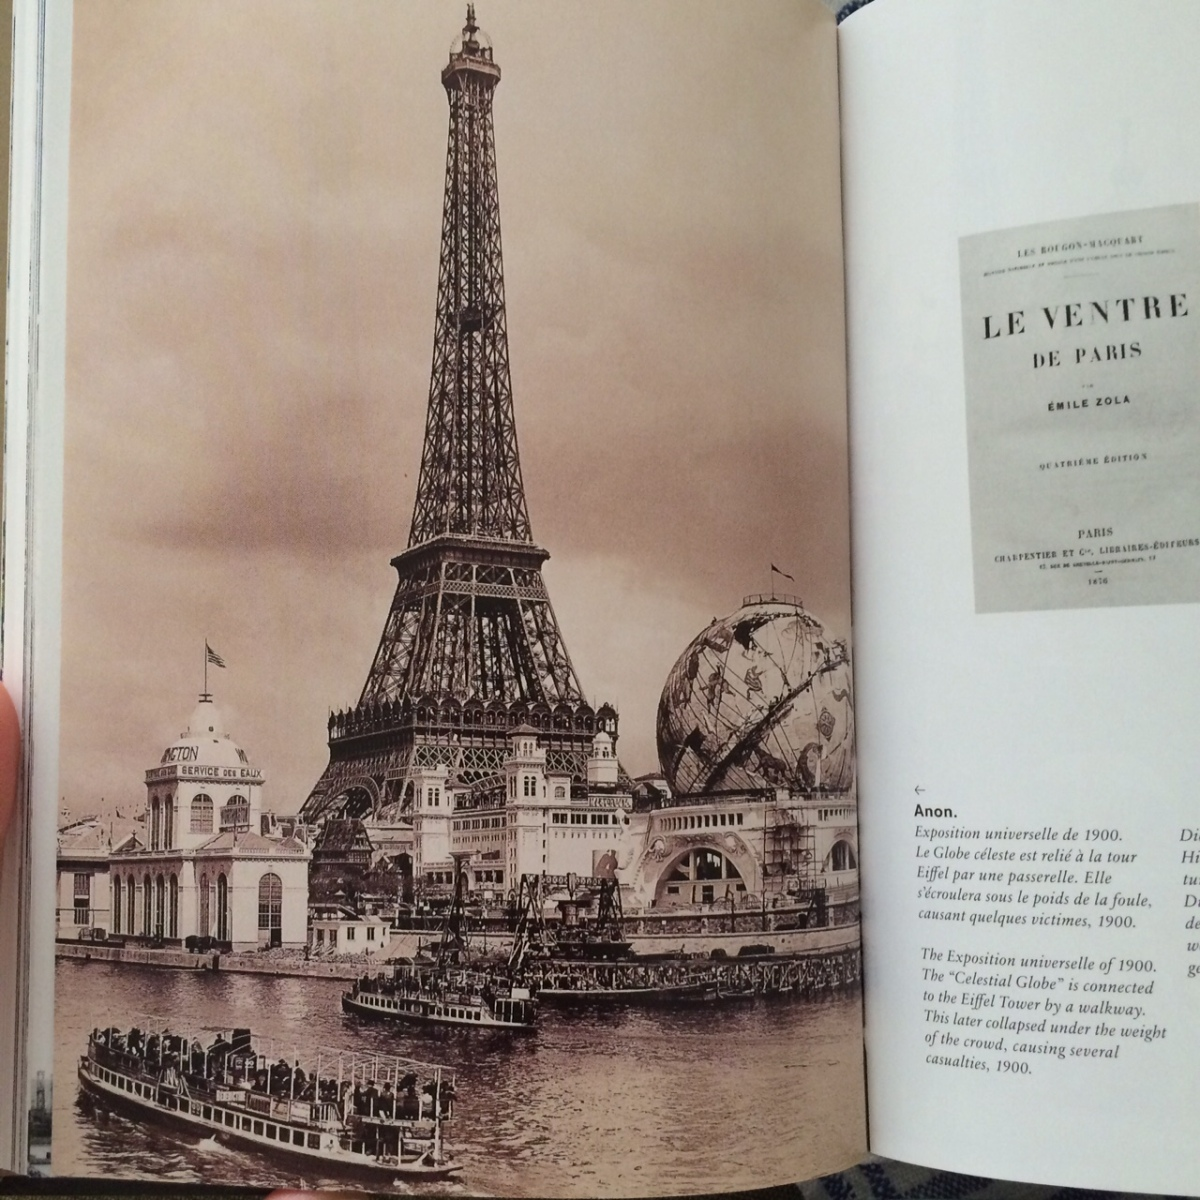 The Exposition universelle of 1900 (anon)